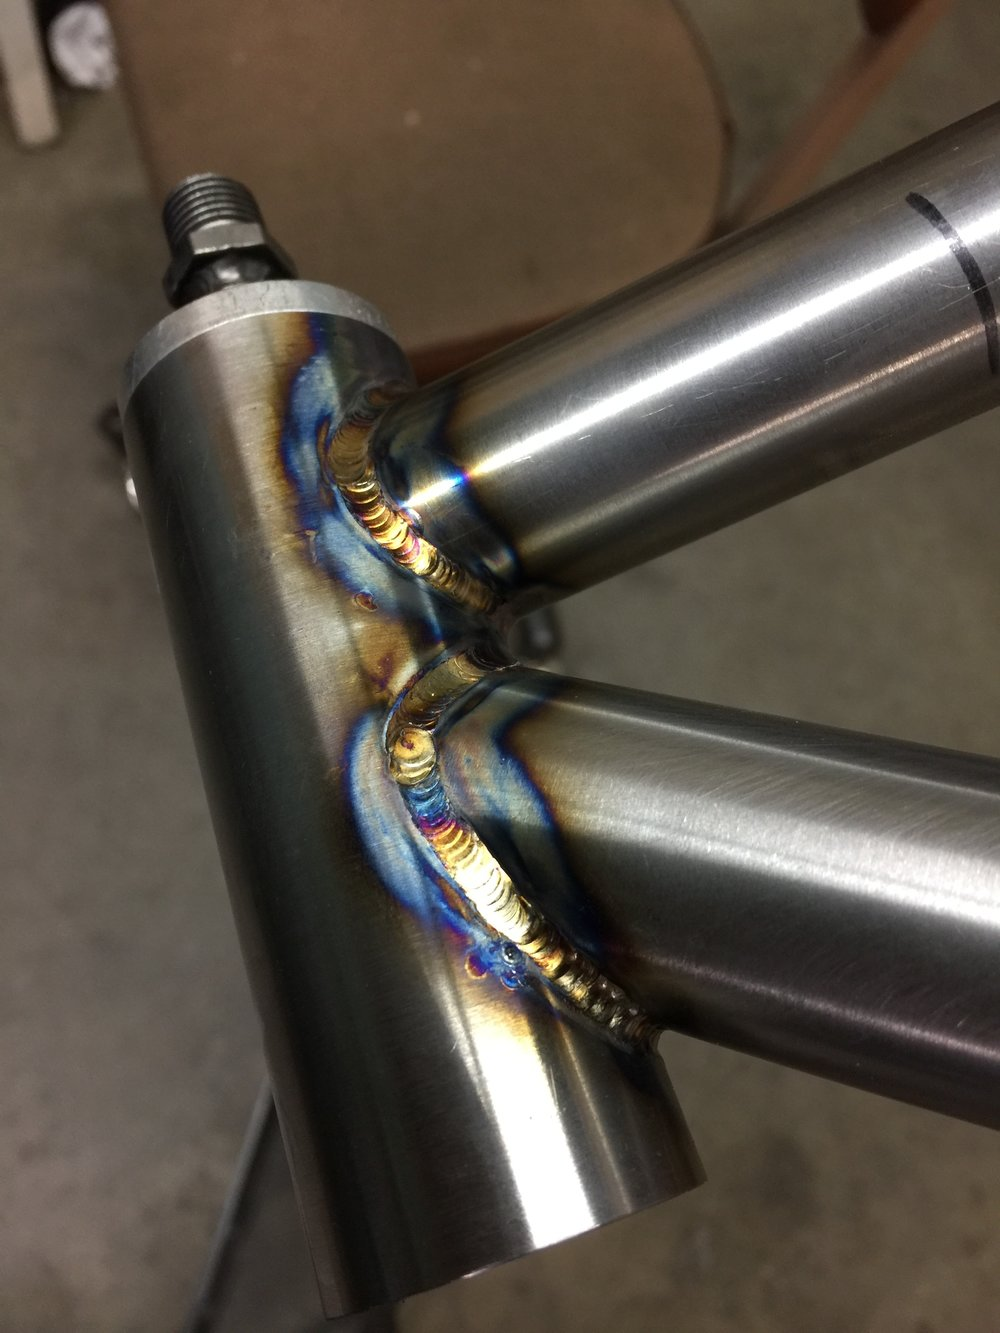 Bloggy Business Bantam Bicycle Works